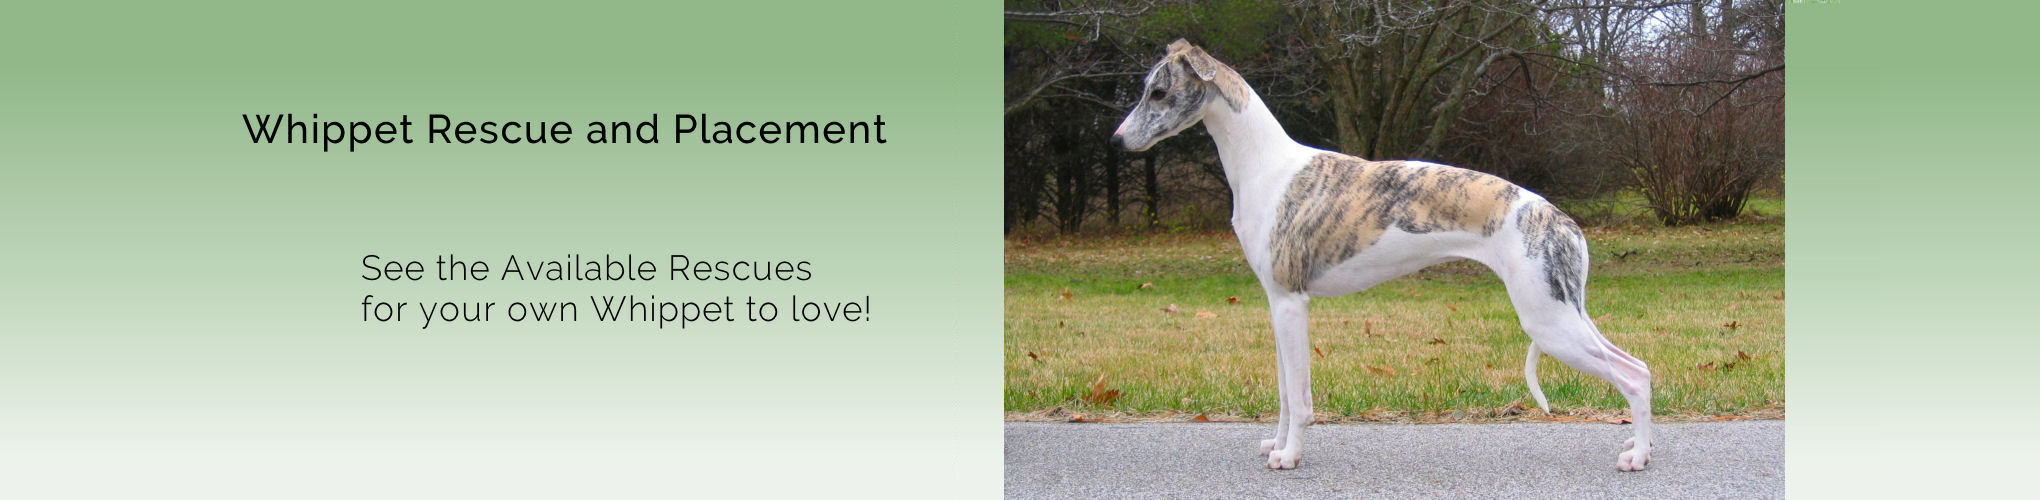 Whippet Rescue and Placement